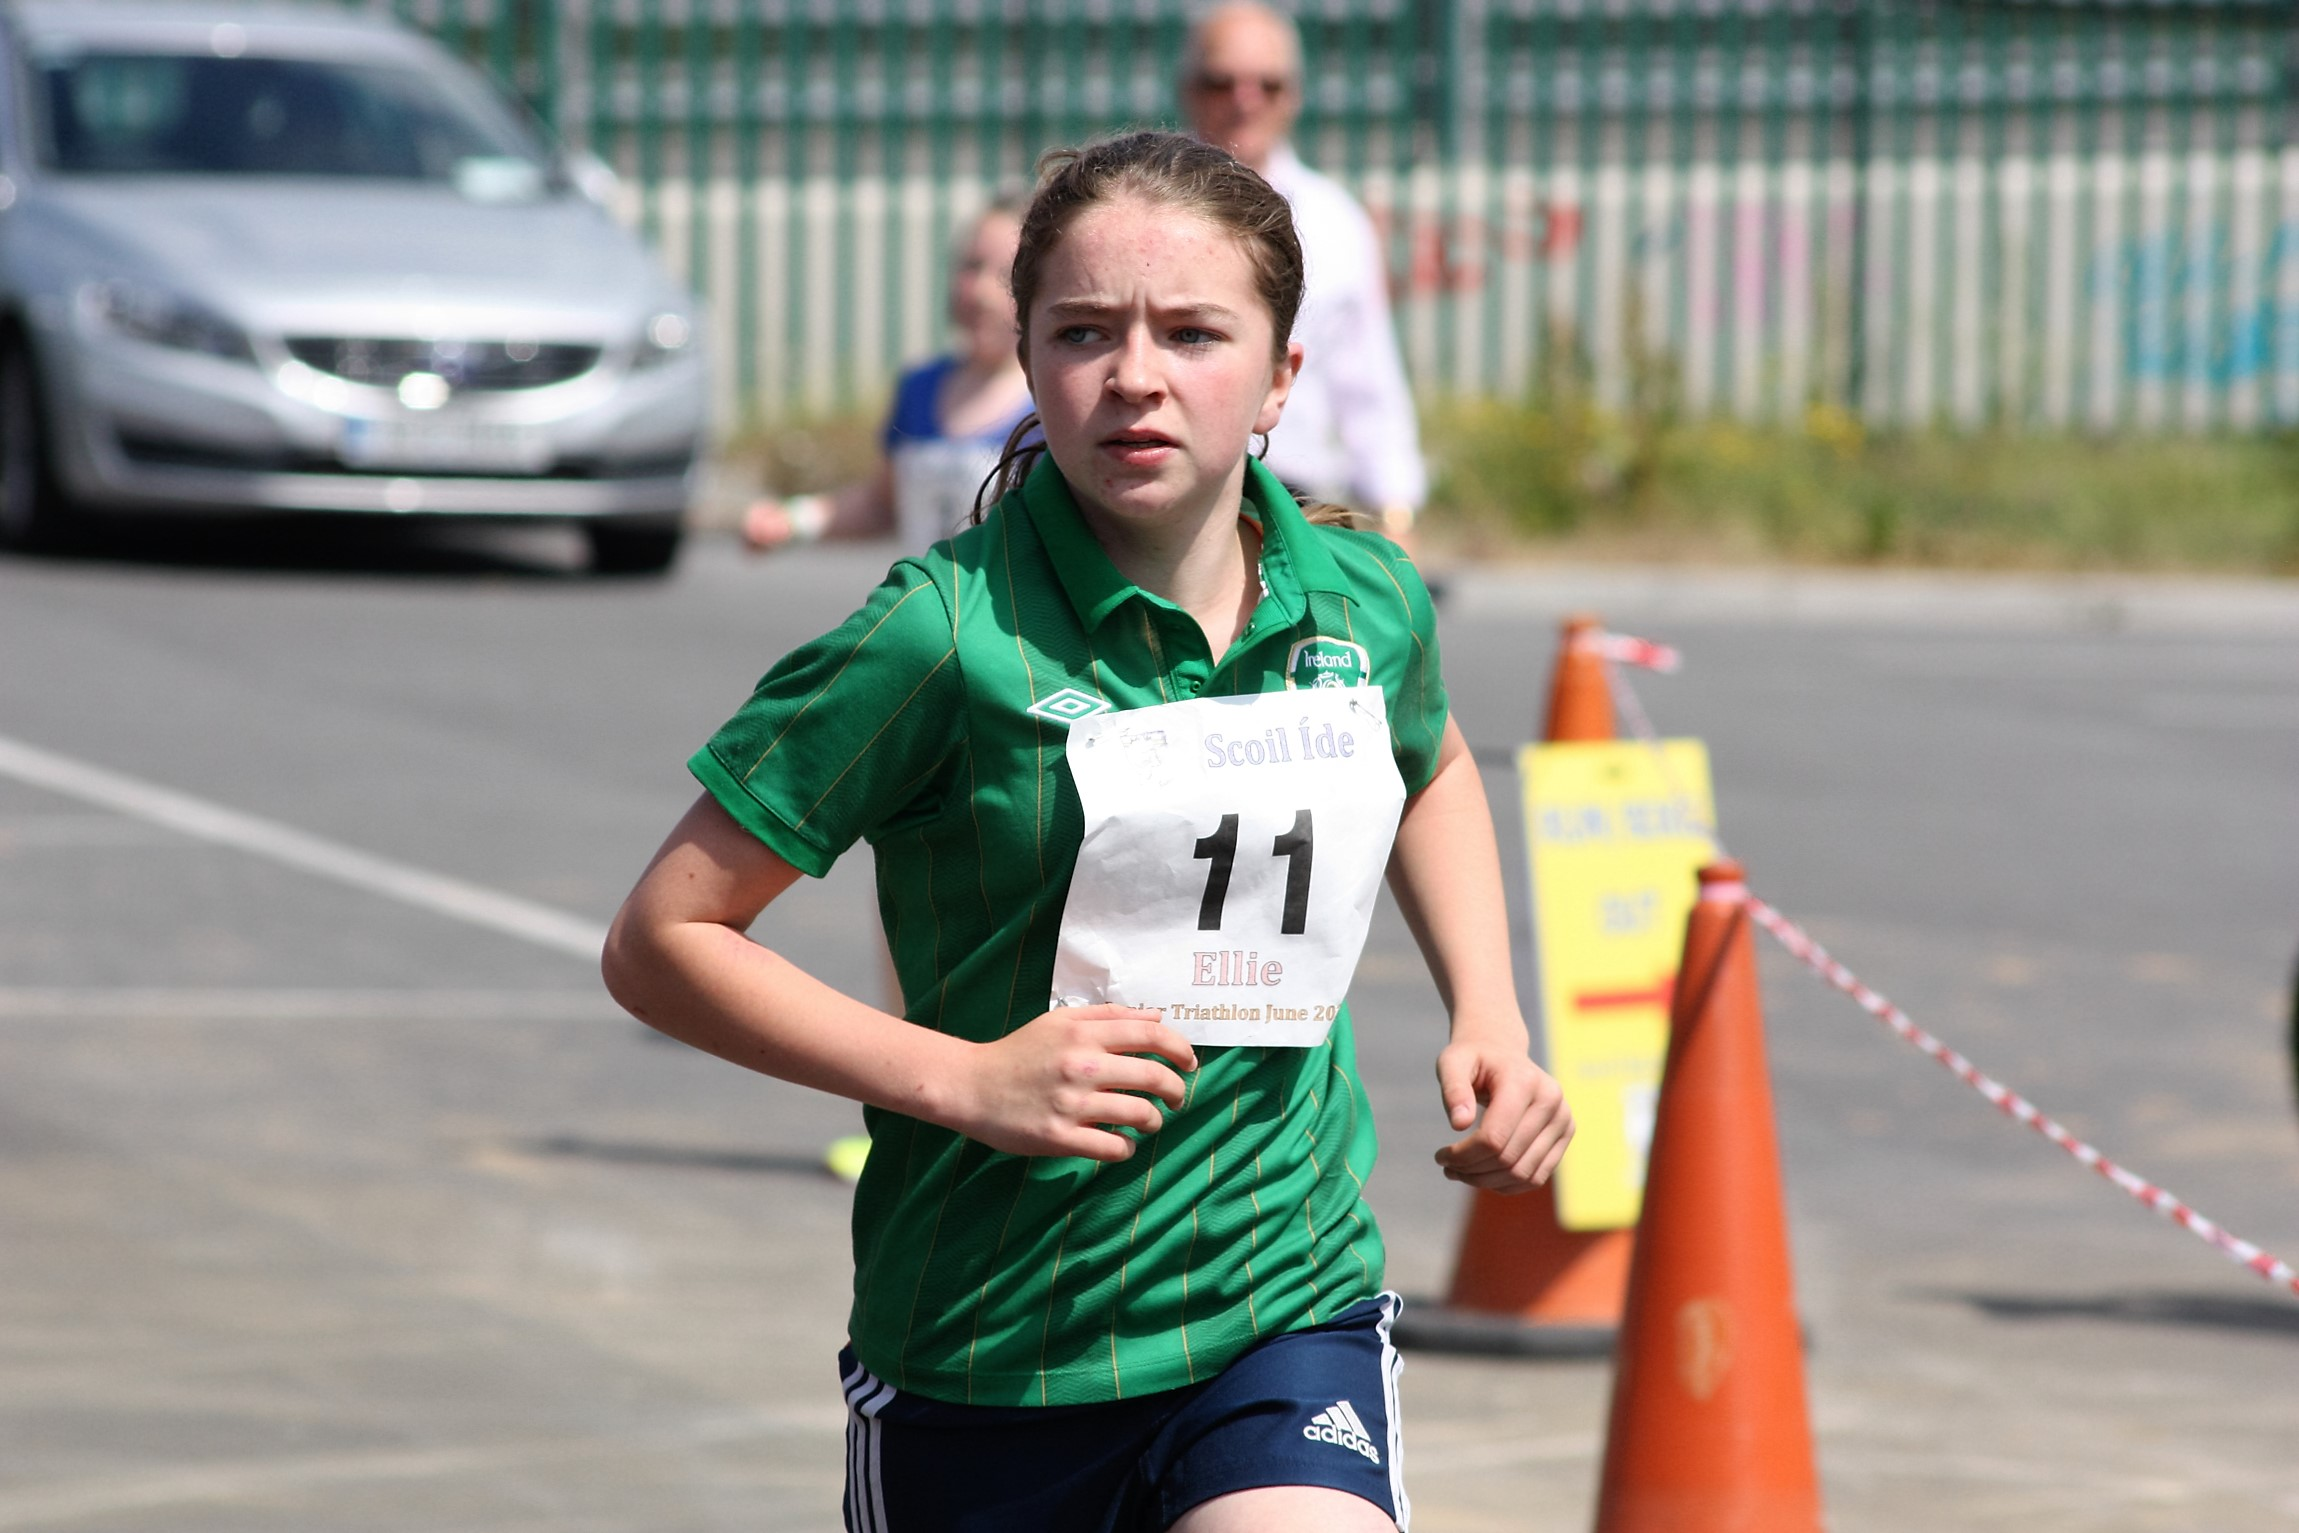 Ellie Triathlon